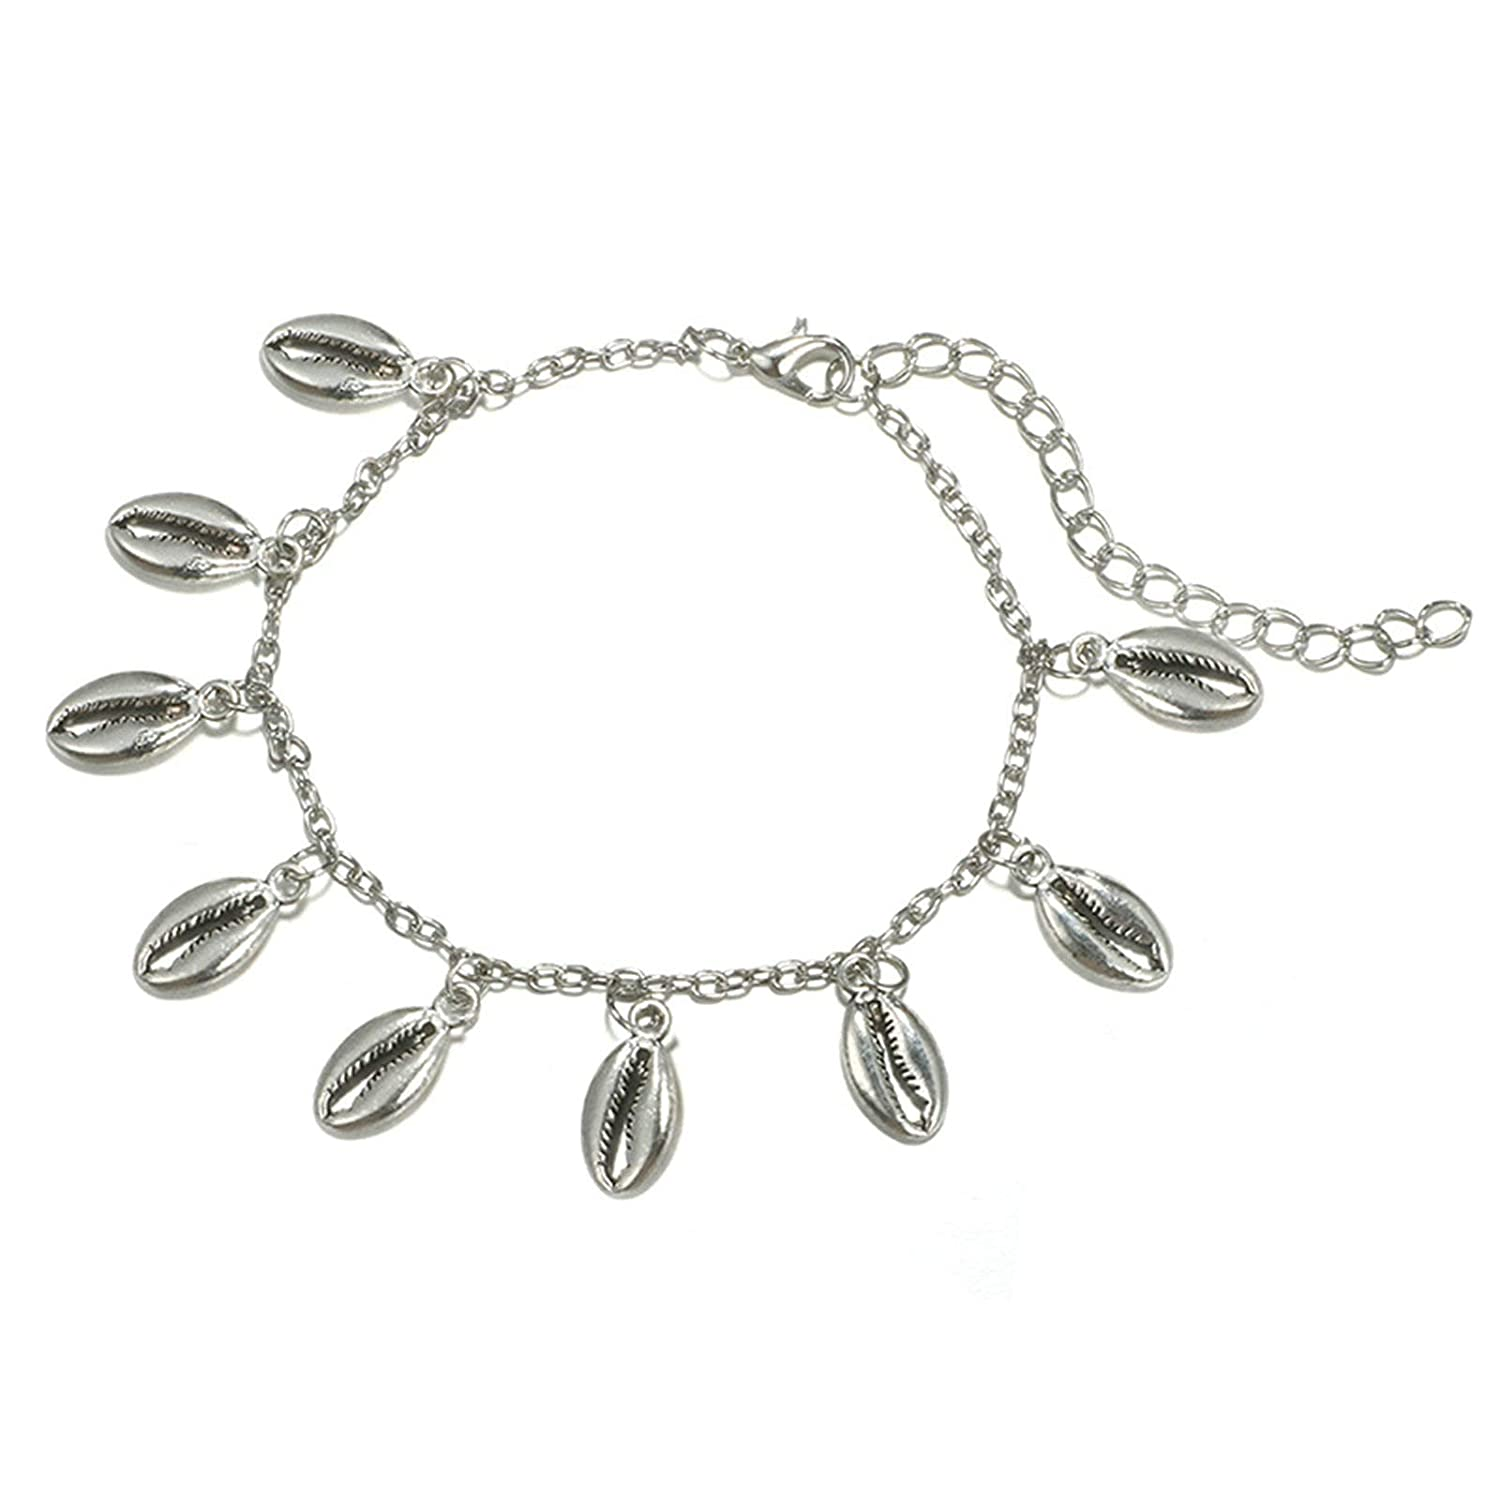 Aooaz Womens Anklet Alloy Anklets Shell Ankle Bracelets Retro